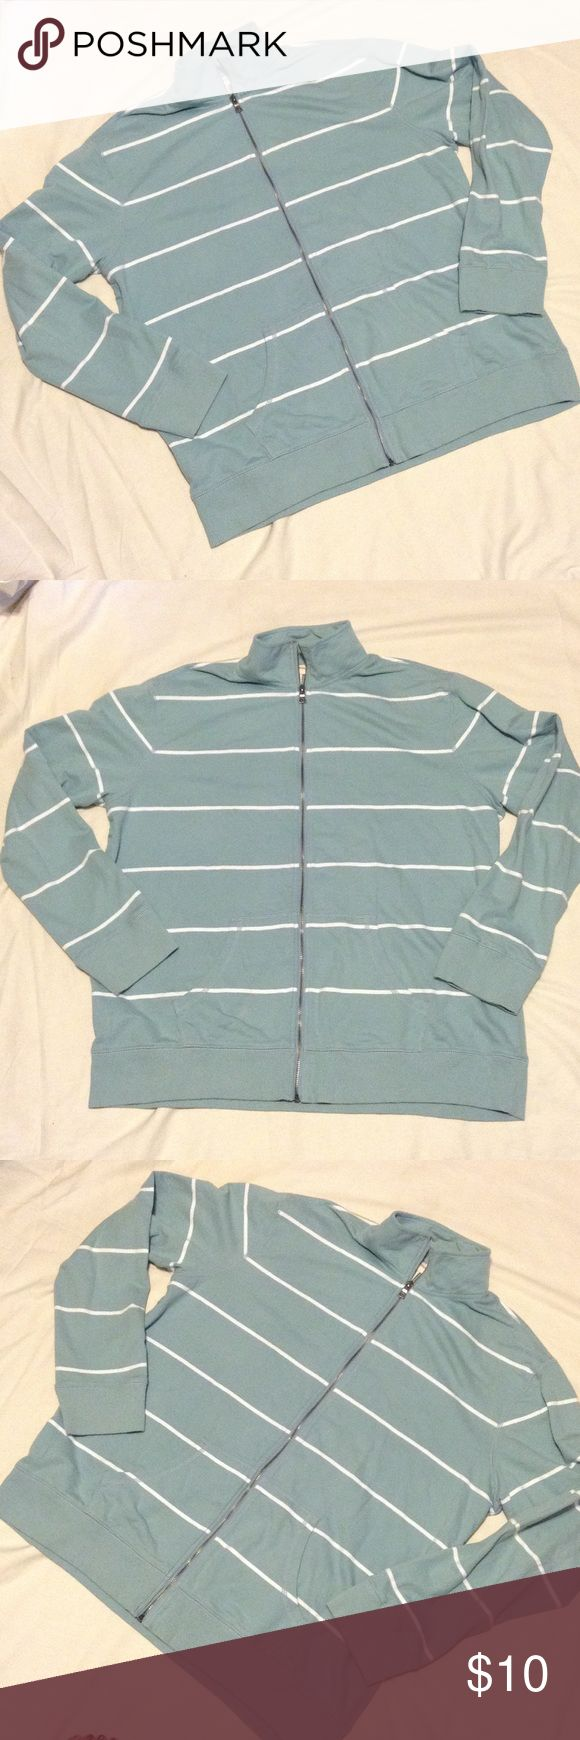 Merona men's zip up Mint condition. Blue and white striped zip up with pockets Merona Sweaters Zip Up